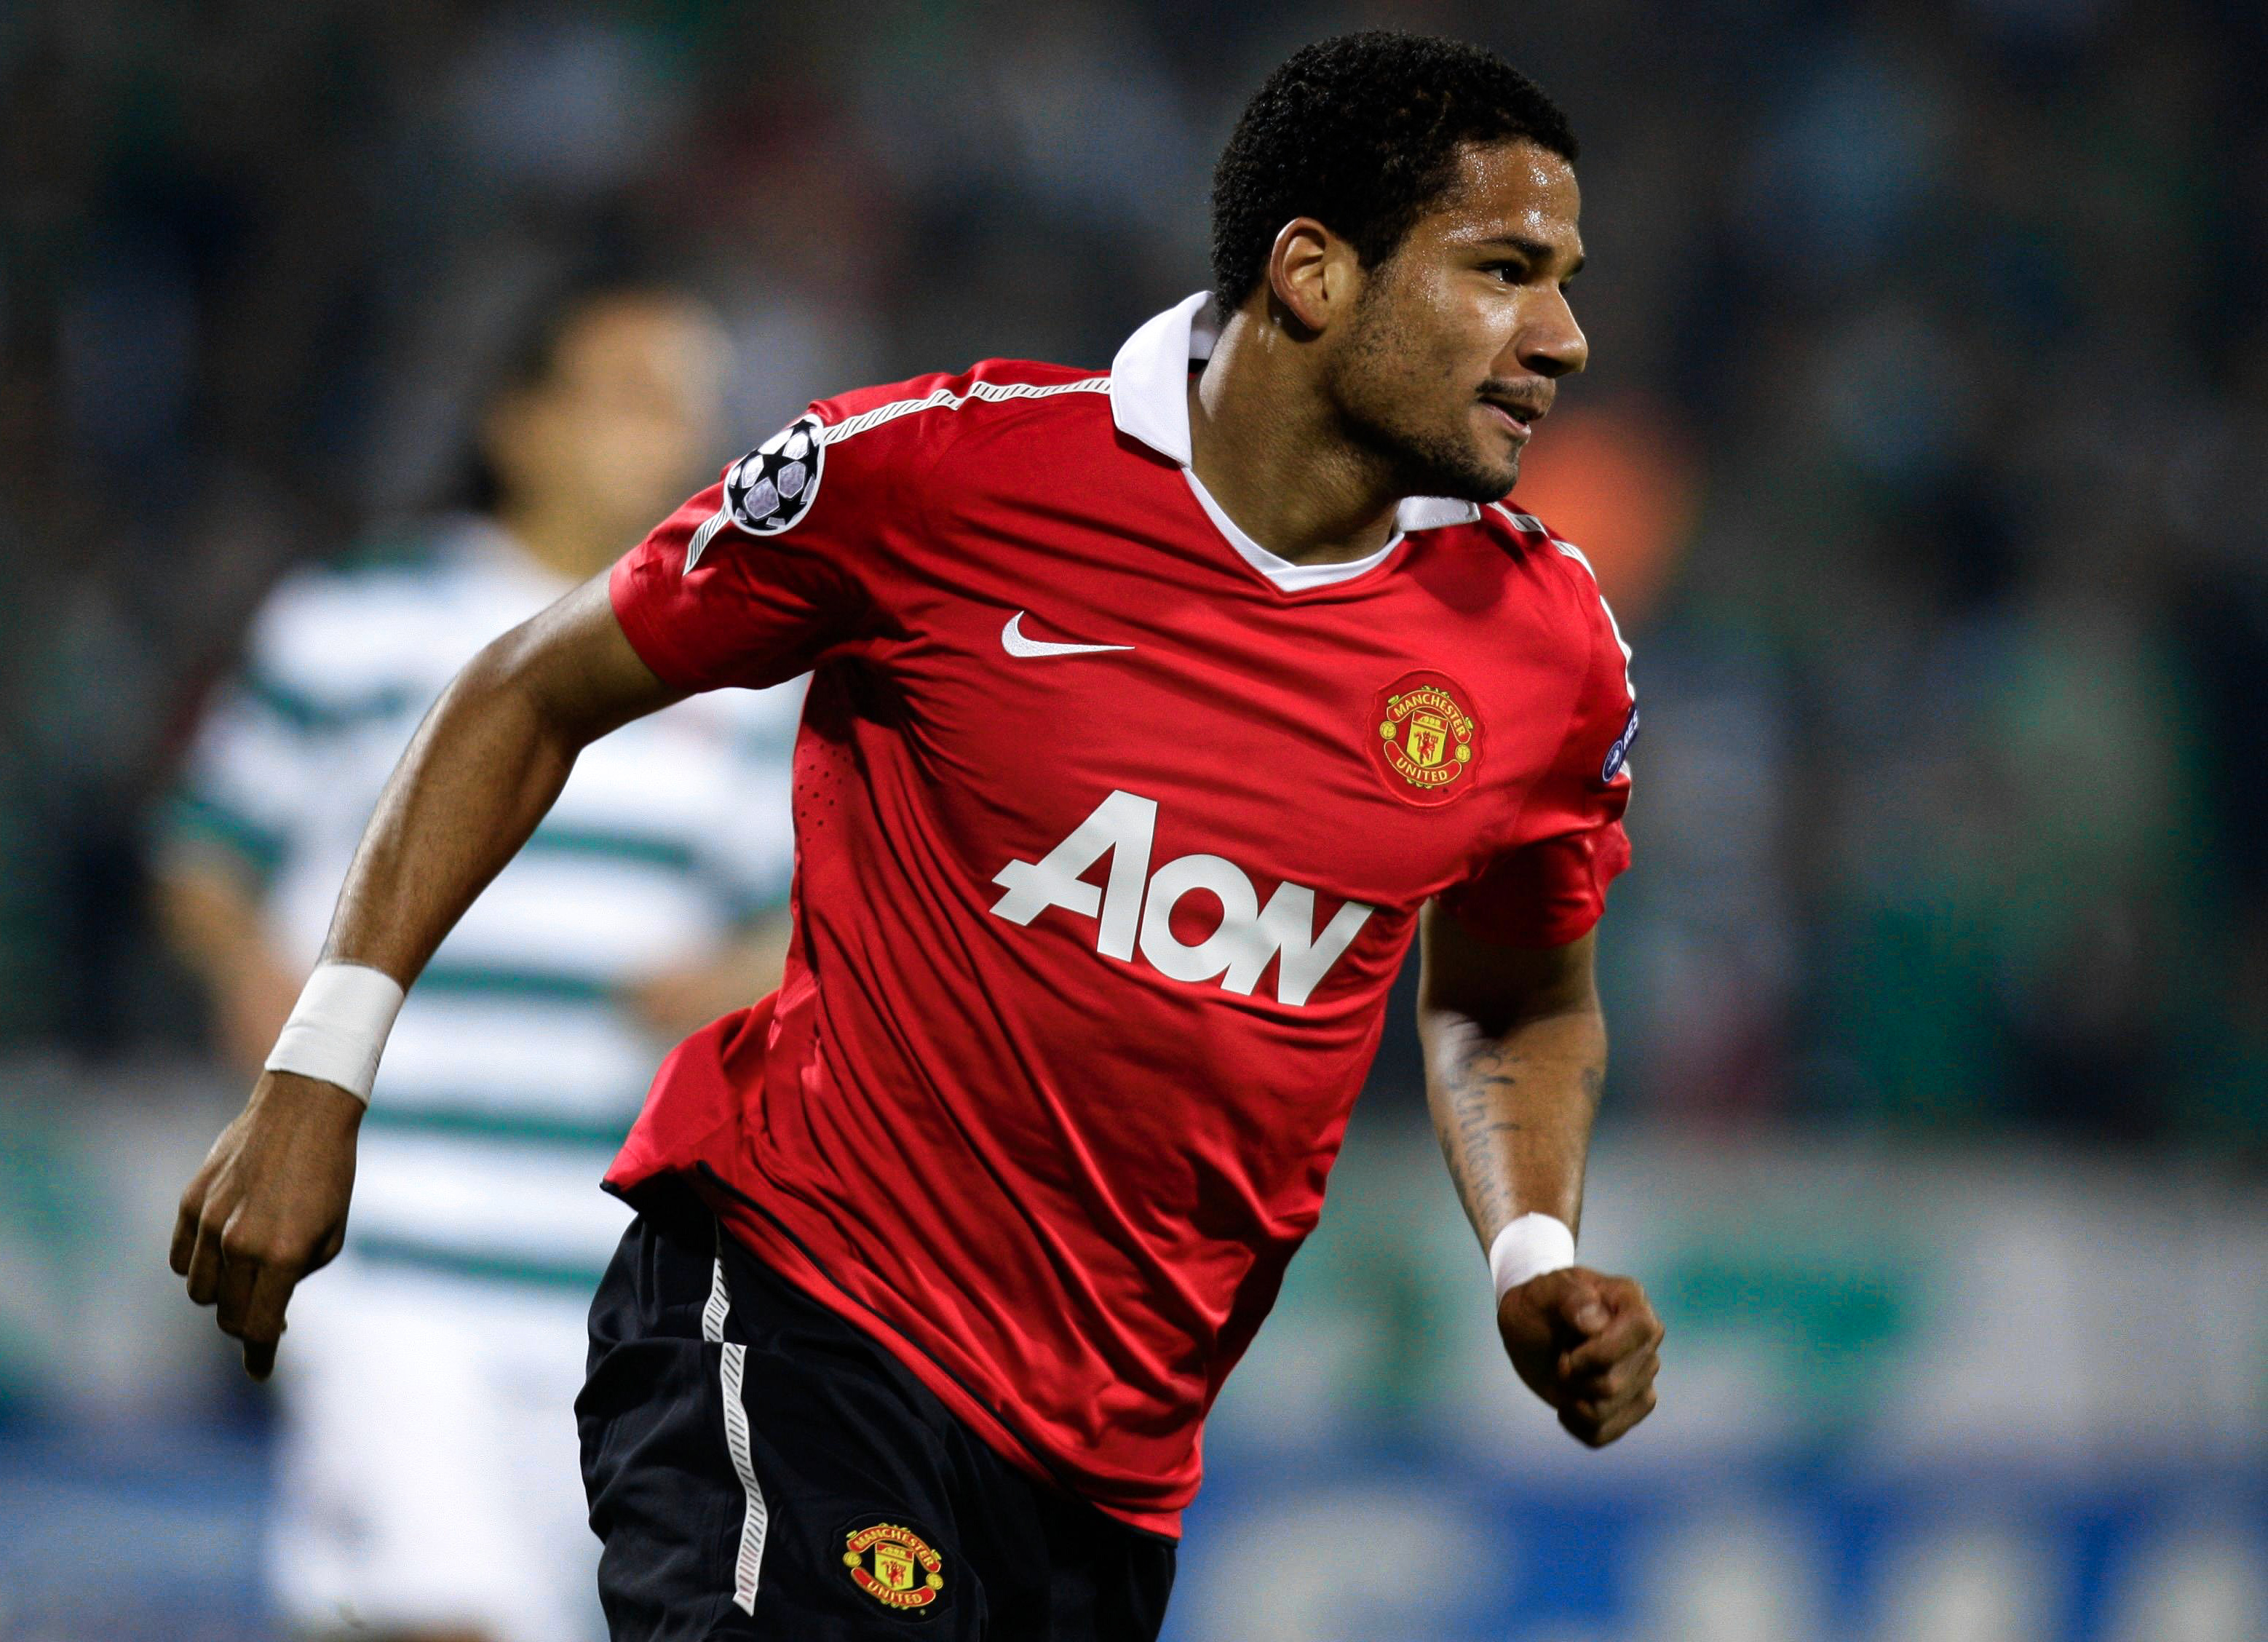 de7217a188c How Bebé went from street football to Manchester United in a whirlwind 18  months